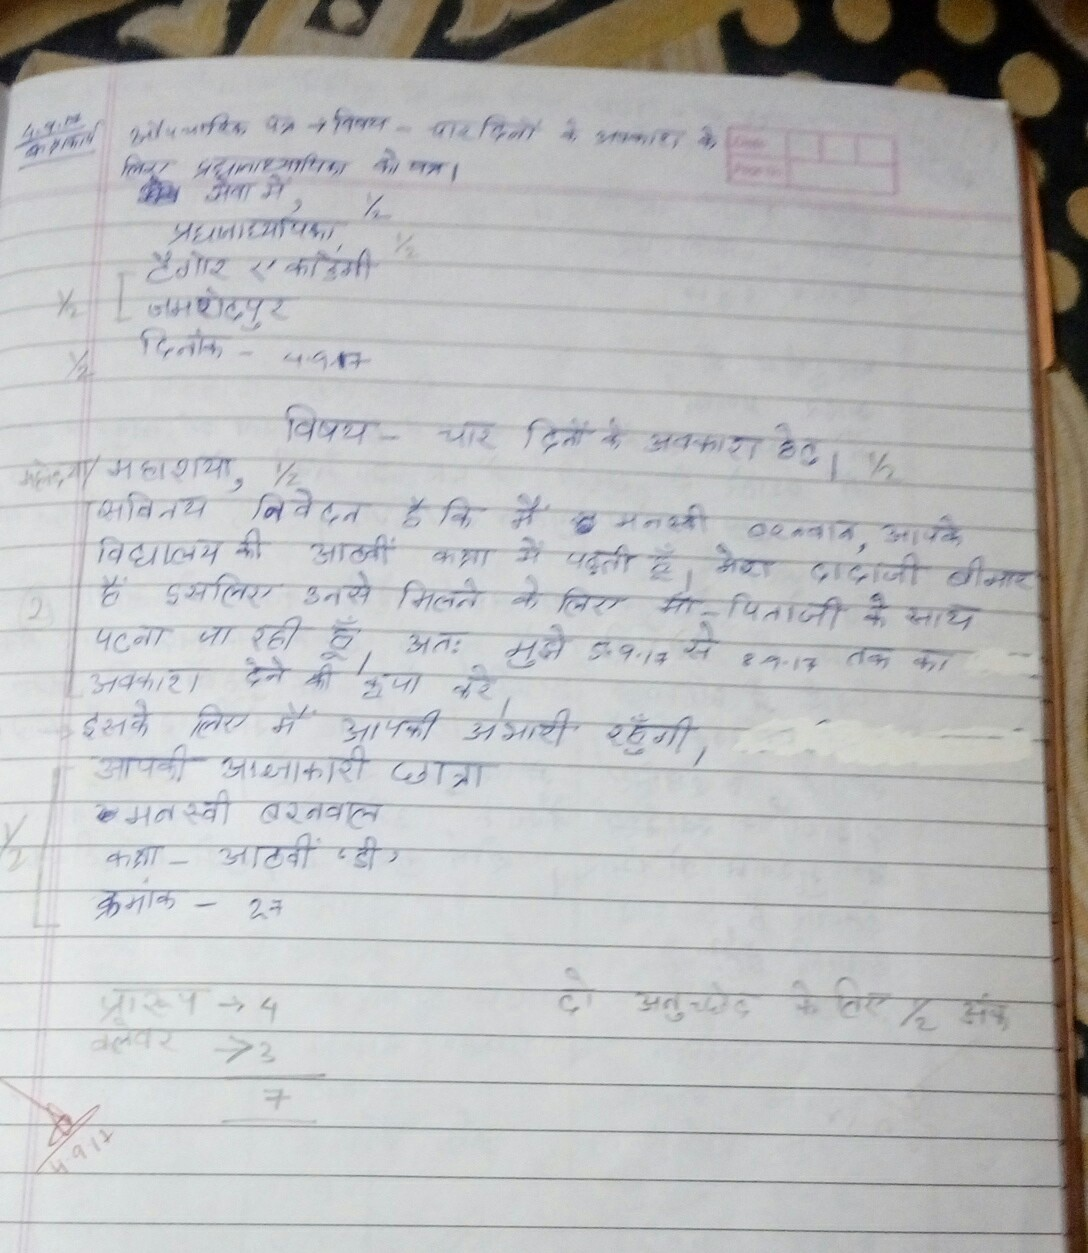 Formal letter writing in hindi for class 10 brainly download jpg altavistaventures Images